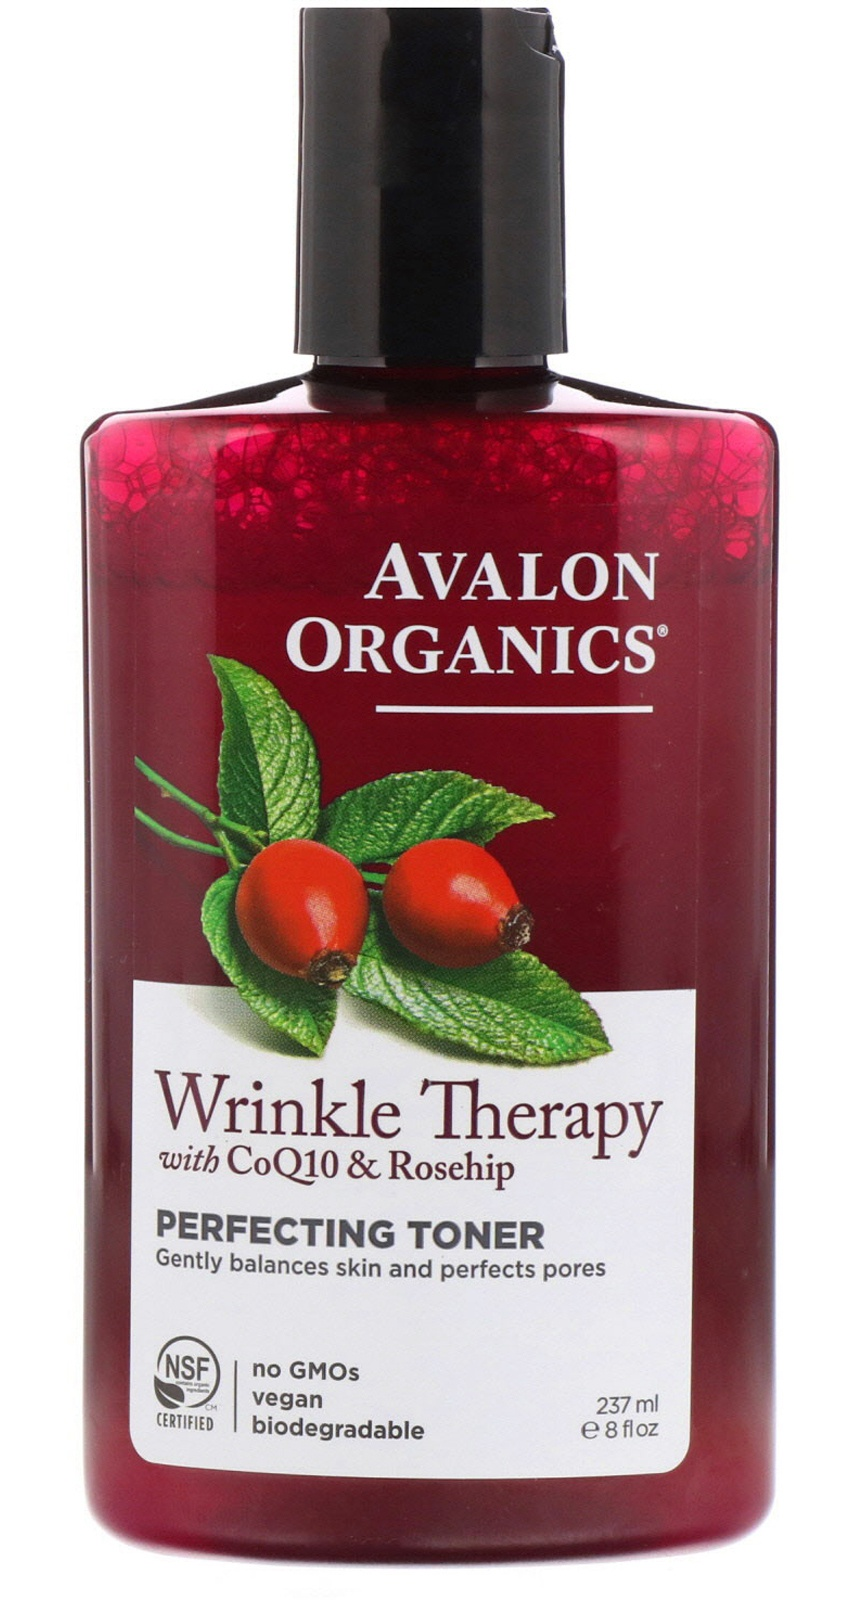 Avalon Organics Wrinkle Therapy, With Coq10 & Rosehip, Perfecting Toner